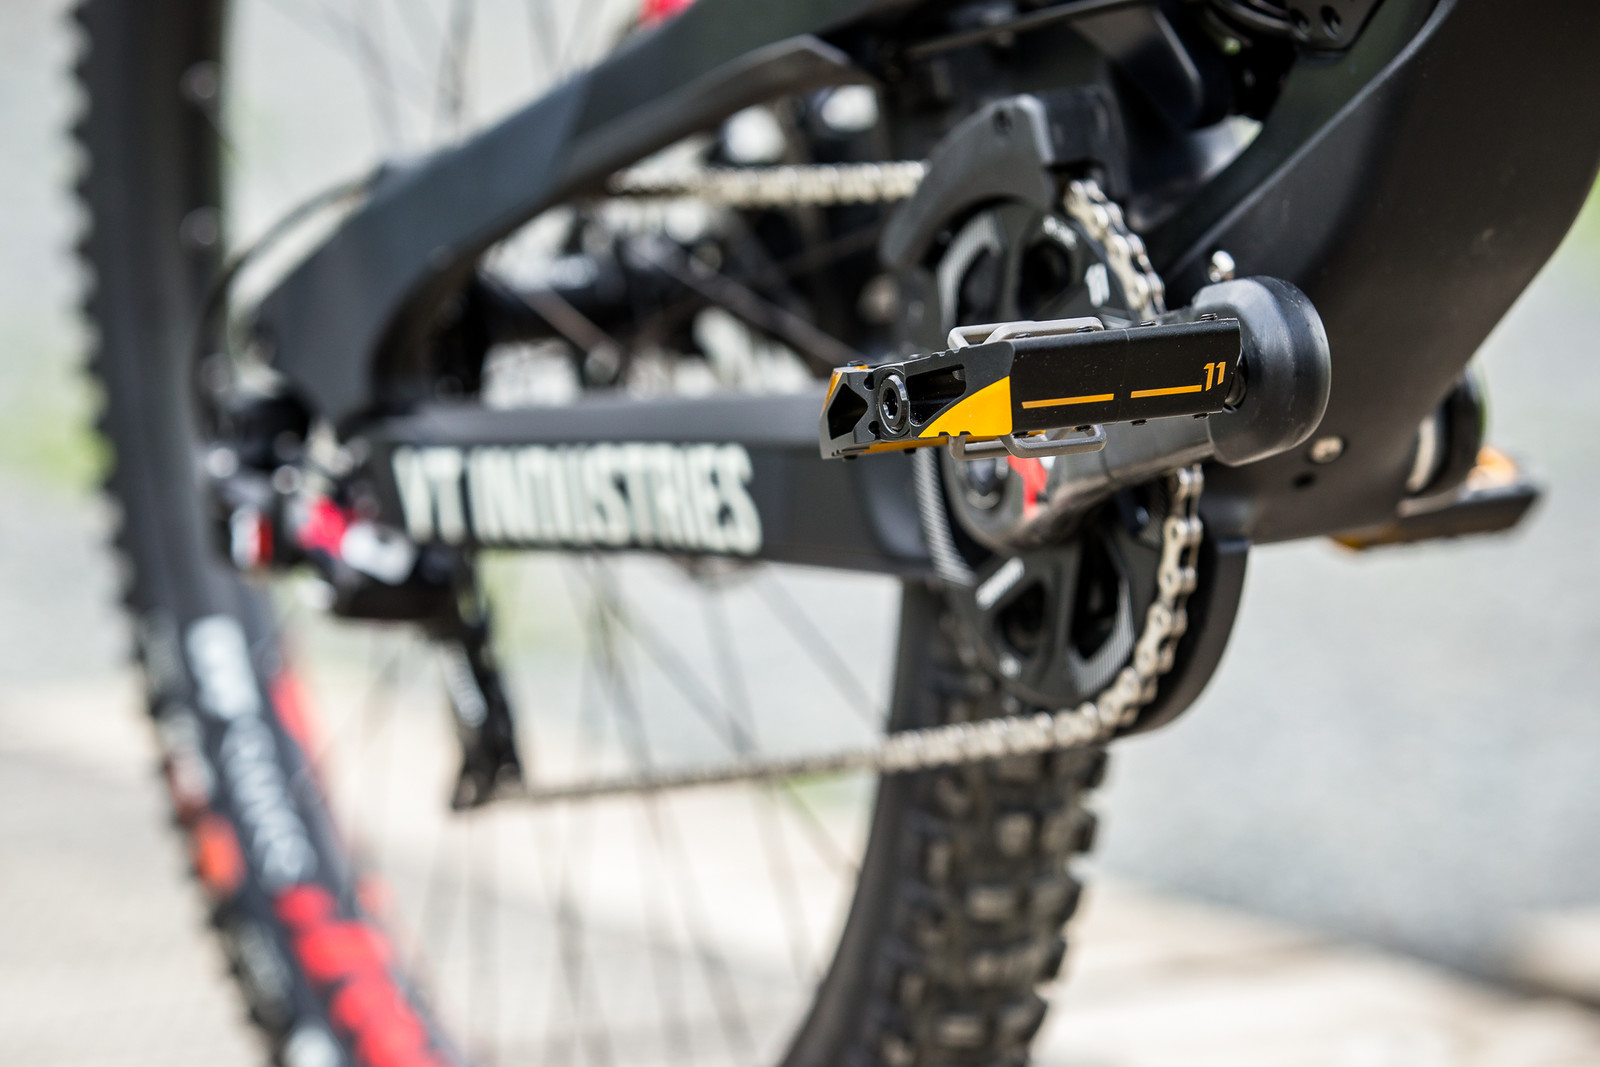 Crank Brothers Mallet DH Pedals - WINNING BIKE - Vali Höll's YT TUES - Mountain Biking Pictures - Vital MTB